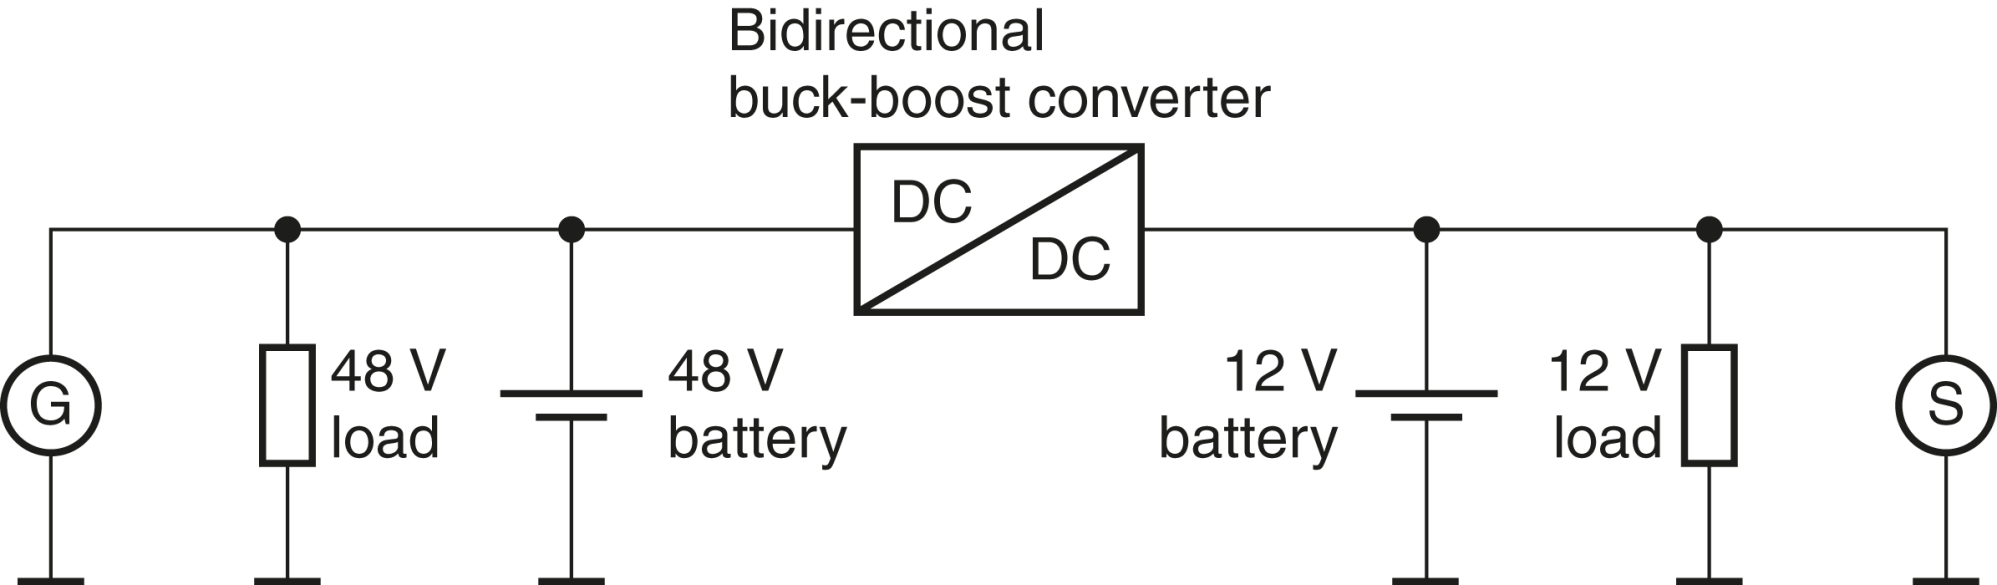 hight resolution of automotive electronics well equipped for 48 volts tdk europe epcos 1998 1999 club car 48 volt diagram 48 volt battery diagram industrial